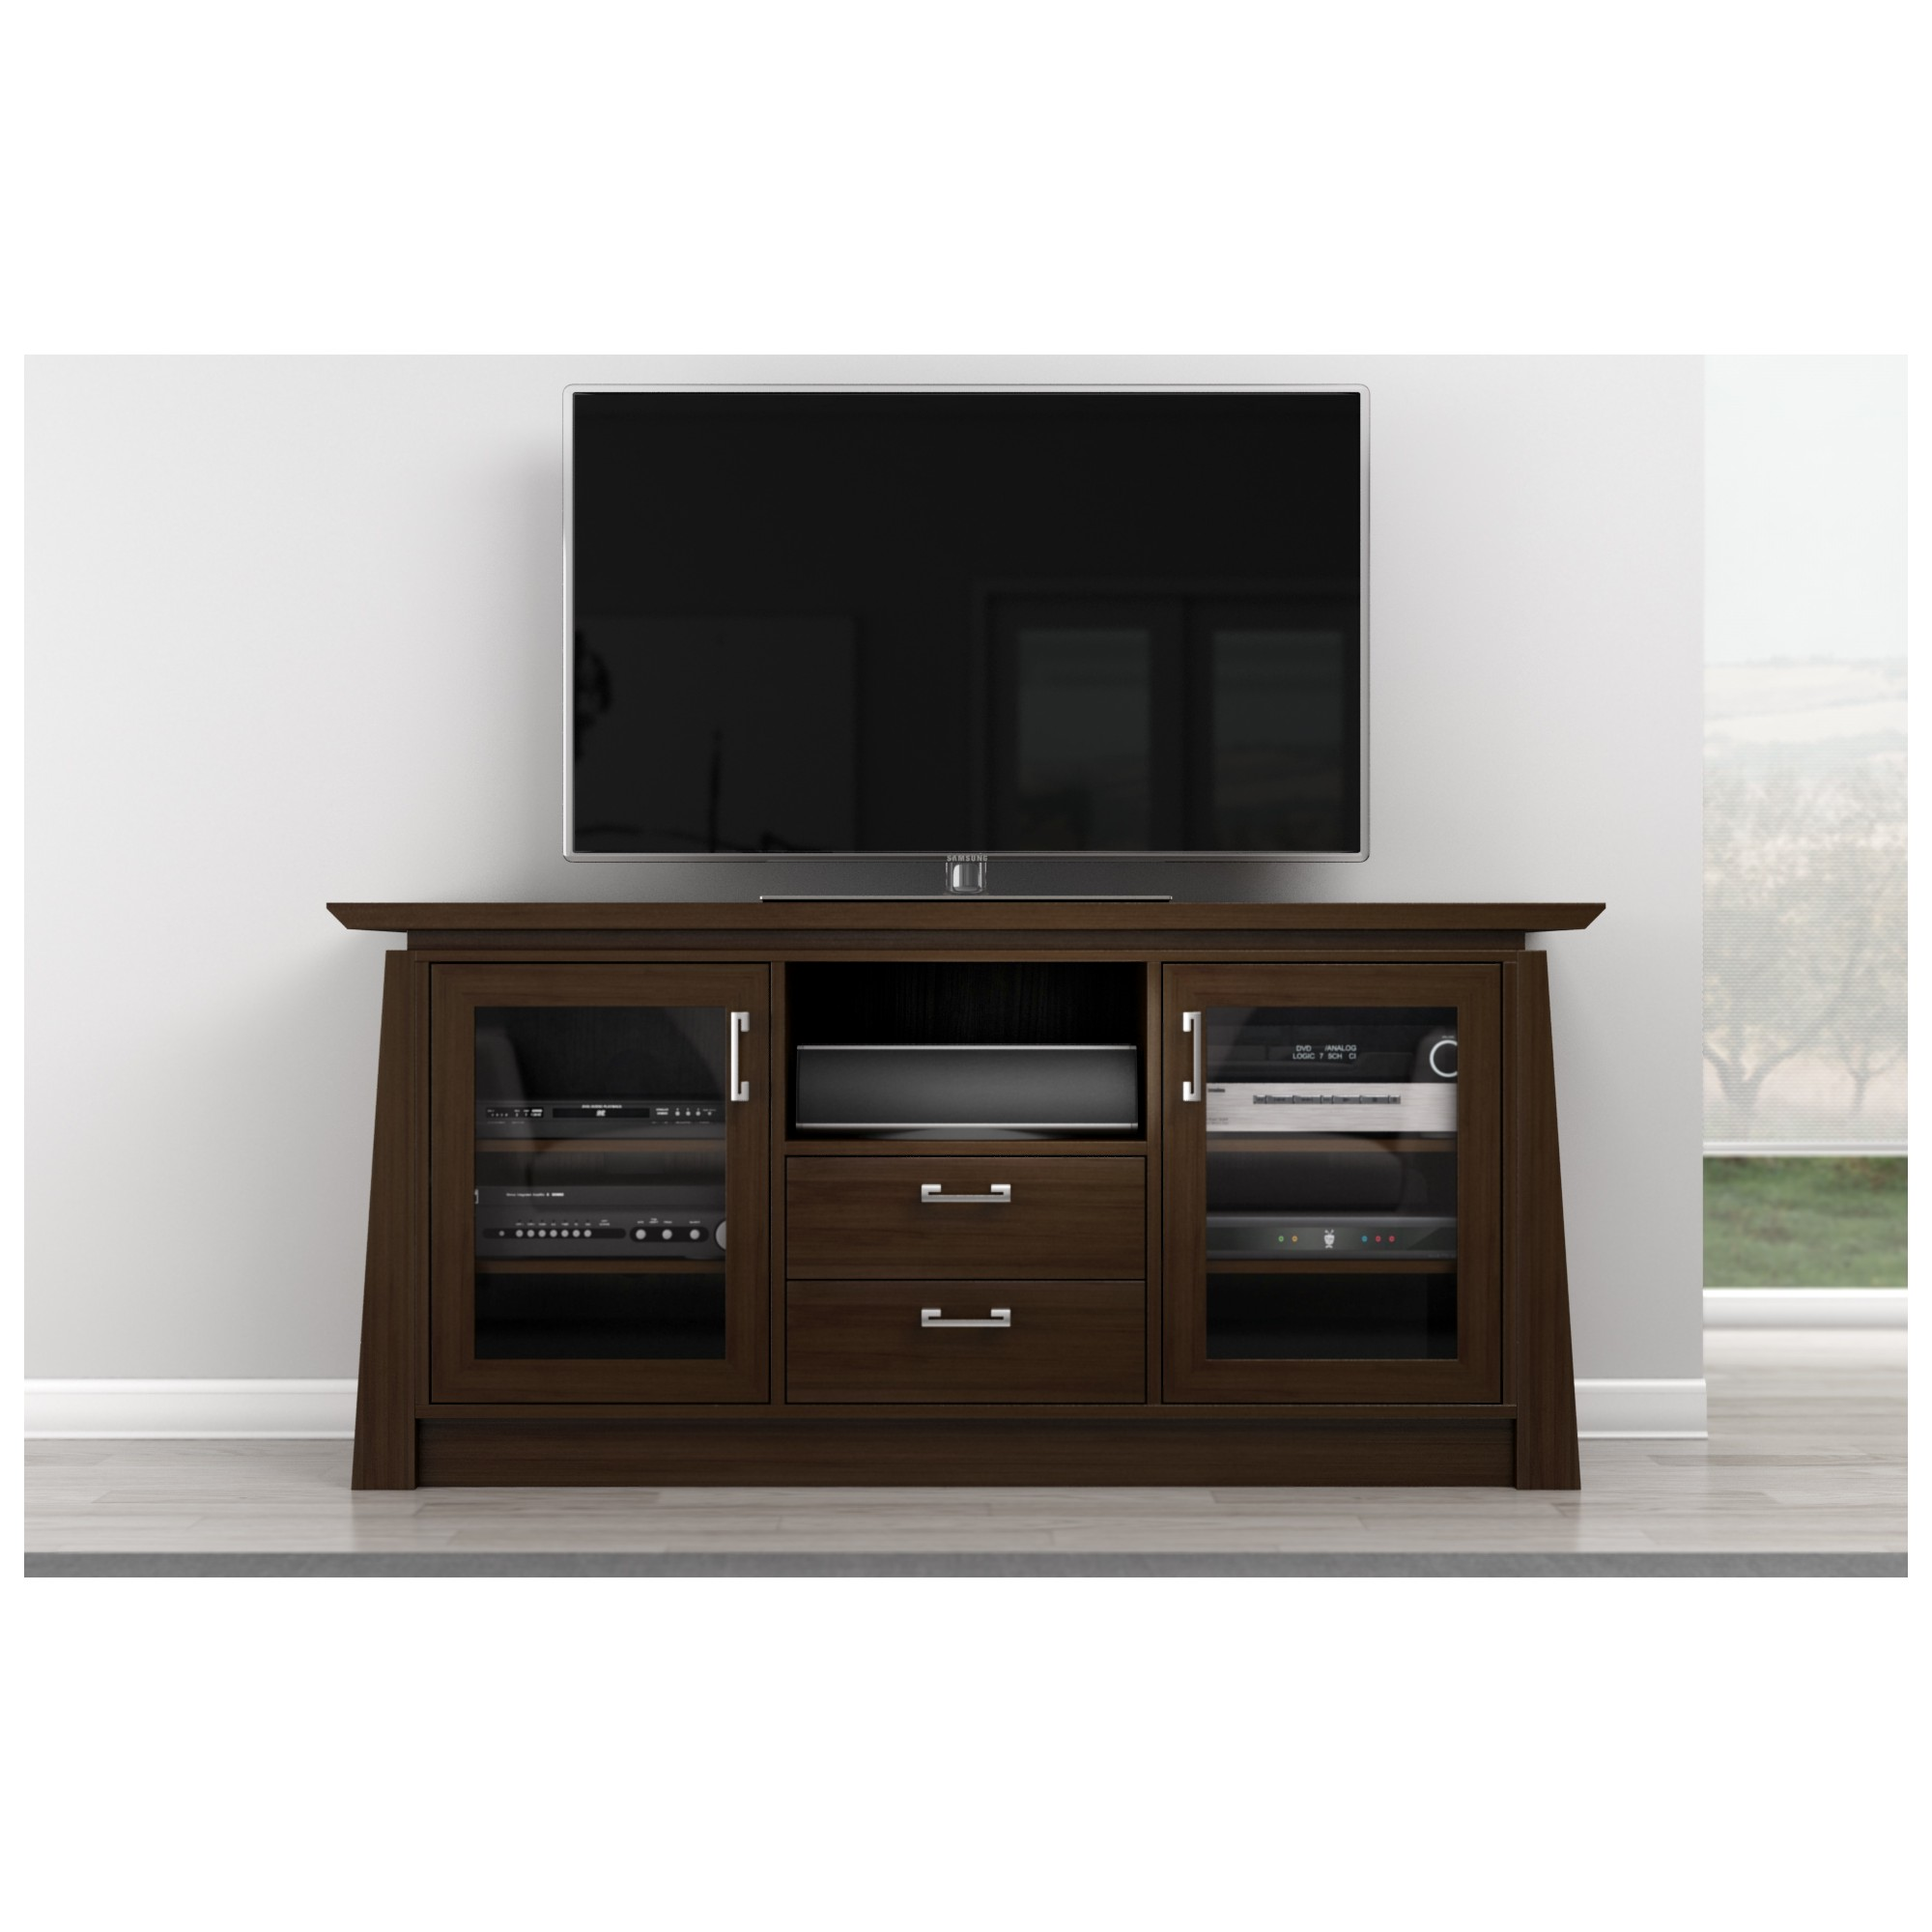 Furnitech Elegante 70 Tv Stand Asian